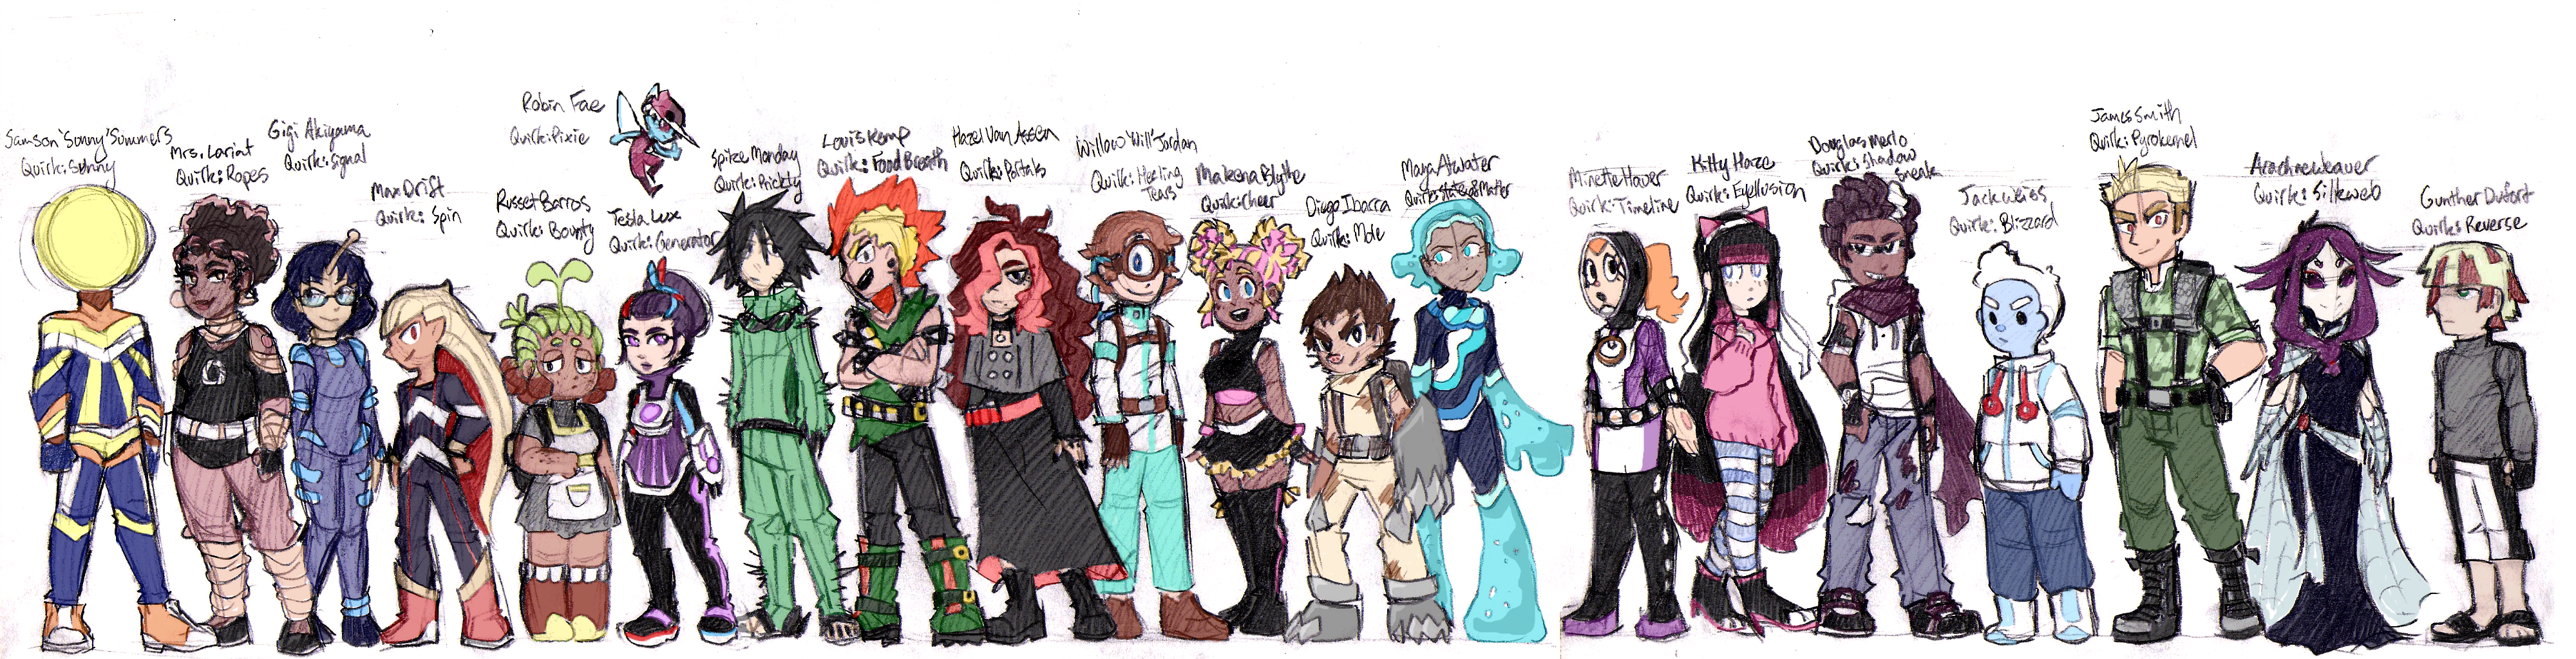 Hero Academia OC class! by Coonae on DeviantArt